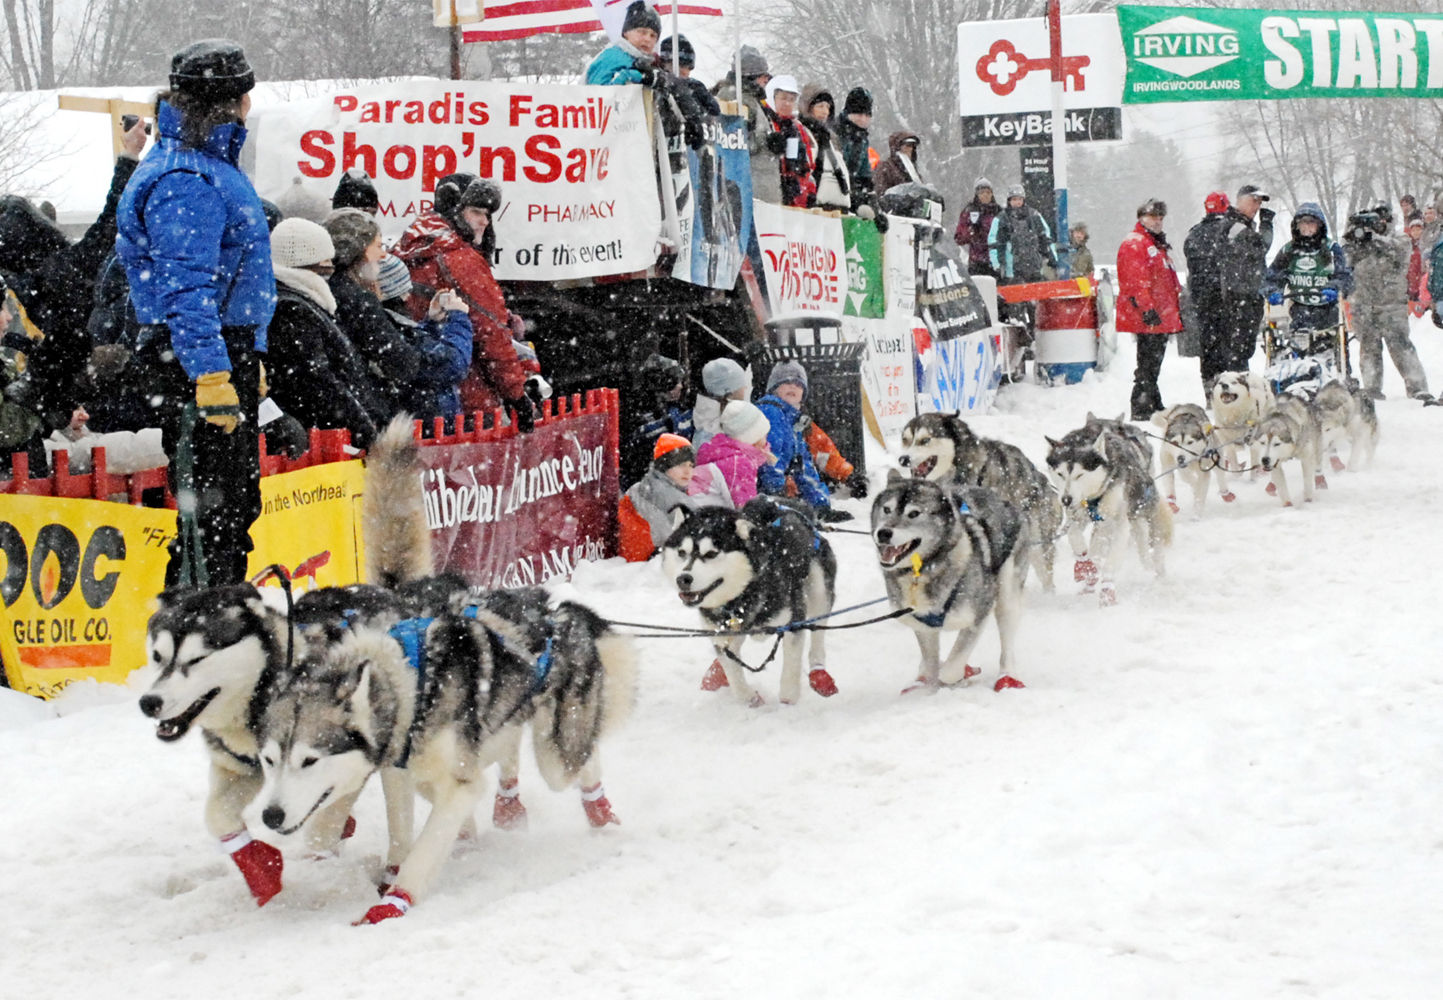 Jaye Foucher of Ashland, N.H., takes off down the start chute during her 2008 run of the Irving Woodlands Can Am Crown 250-mile sled dog race in Fort Kent. This year Corey Nutrition, maker of Inukshuk dog food in Fredericton, New Brunswick, is donating 1 pound of dog food for every dog participating in the 2011 race to be used as the required emergency food the mushers must carry in their sled bags.